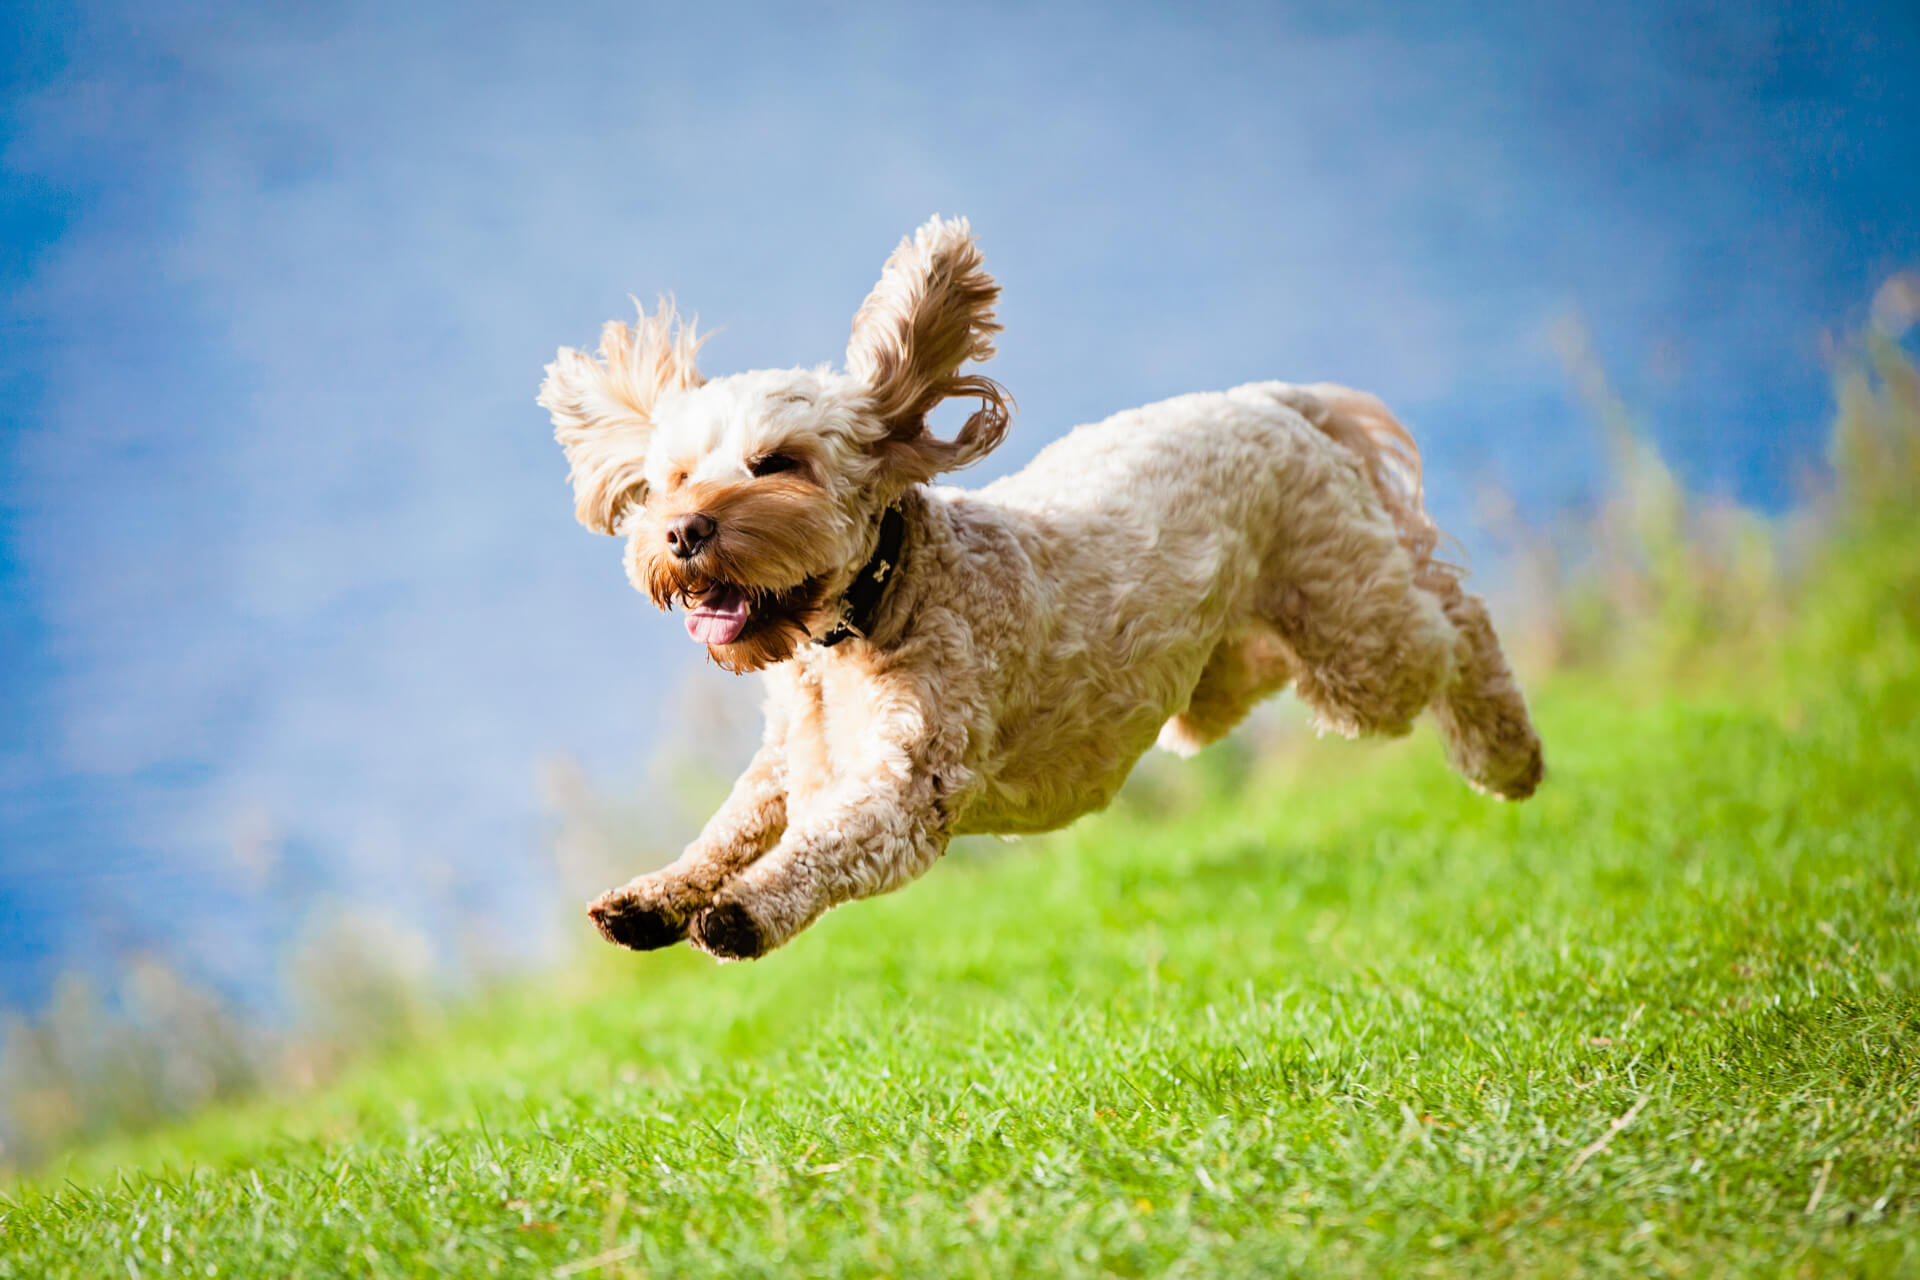 dog leaping in the air